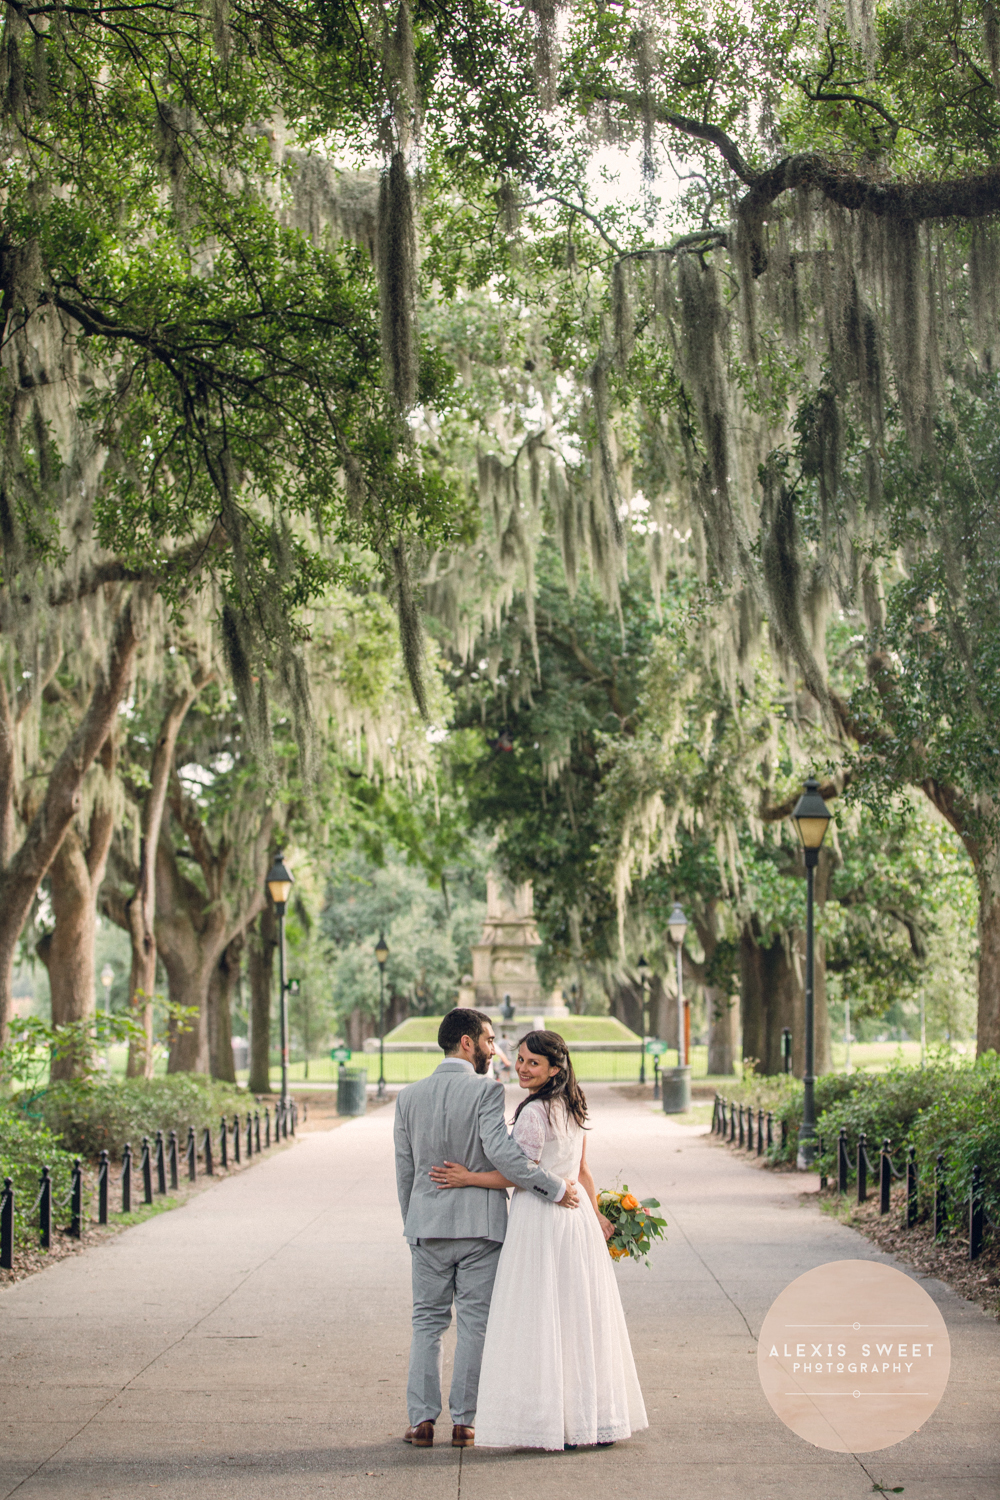 alexis-sweet-photography-ivory-and-beau-bridal-boutique-monterey-square-wedding-savannah-wedding-planner-savannah-weddings-historic-savannah-wedding-vintage-wedding-peach-wedding-southern-vintage-wedding-savannah-bridal-boutique-15.jpg